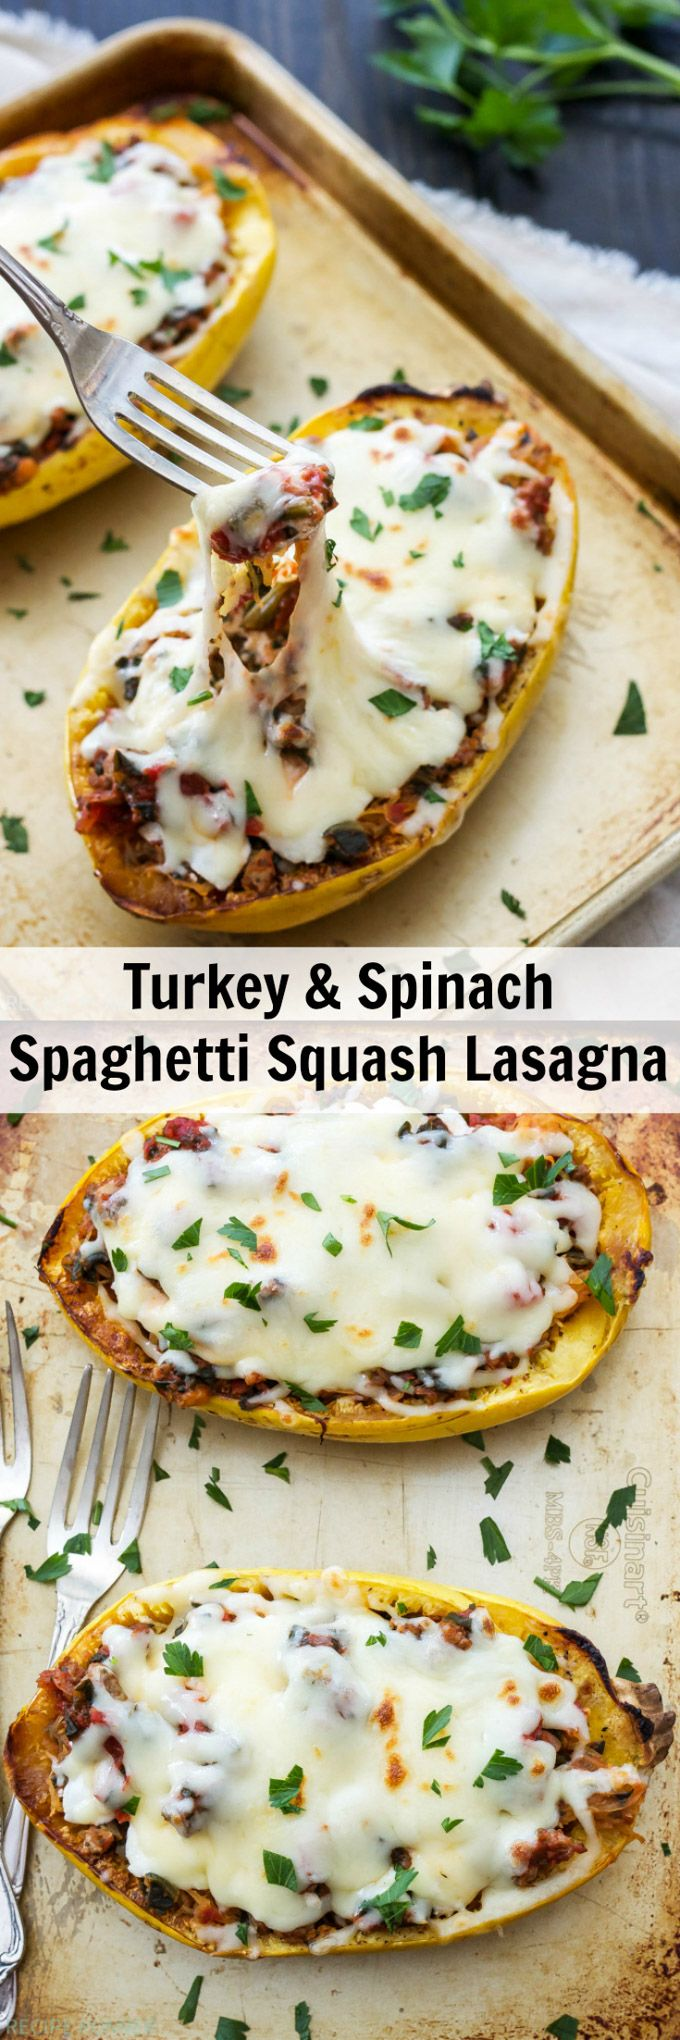 Turkey and Spinach Spaghetti Squash Lasagna   Skip the noodles and make this lighter, lower carb and healthier version of lasagna!